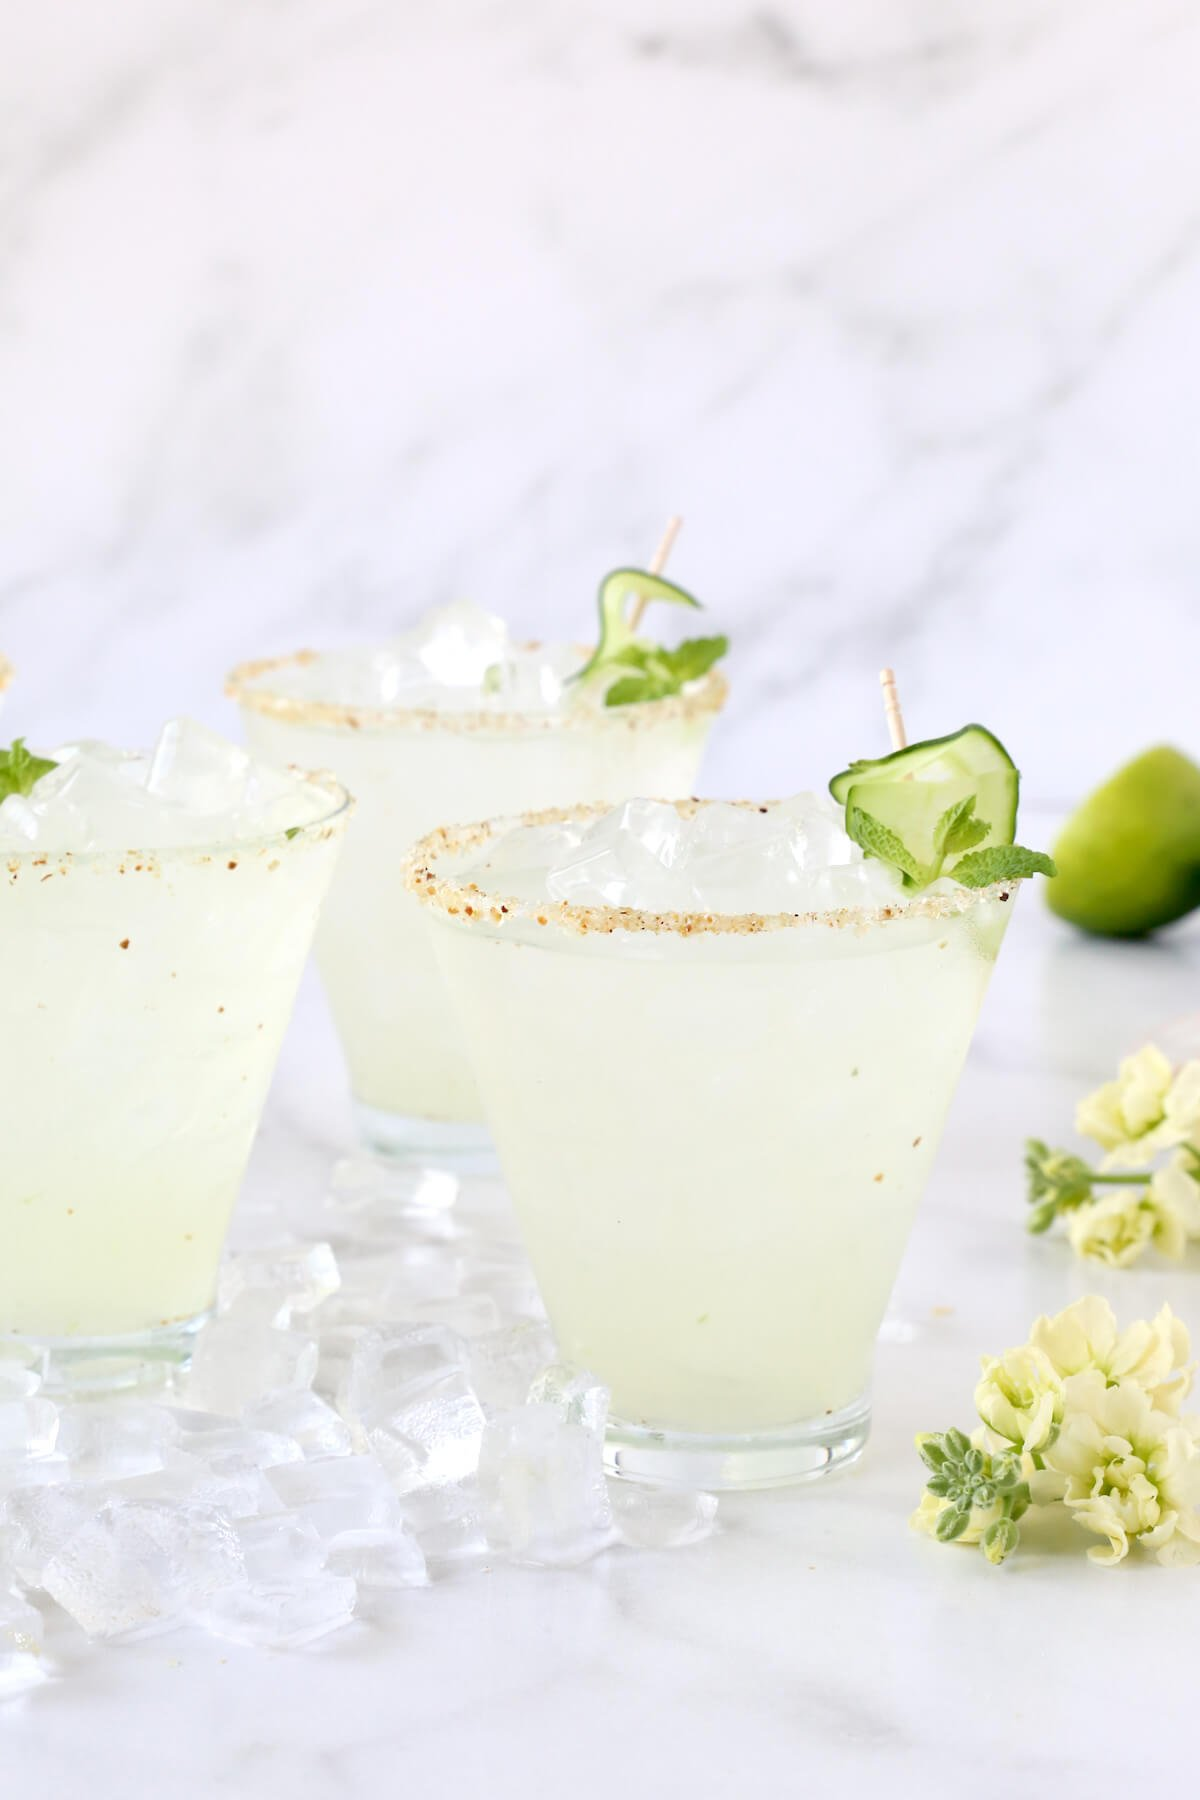 Three glasses with a salted rim, sliced cucumber and flowers and ice around it.